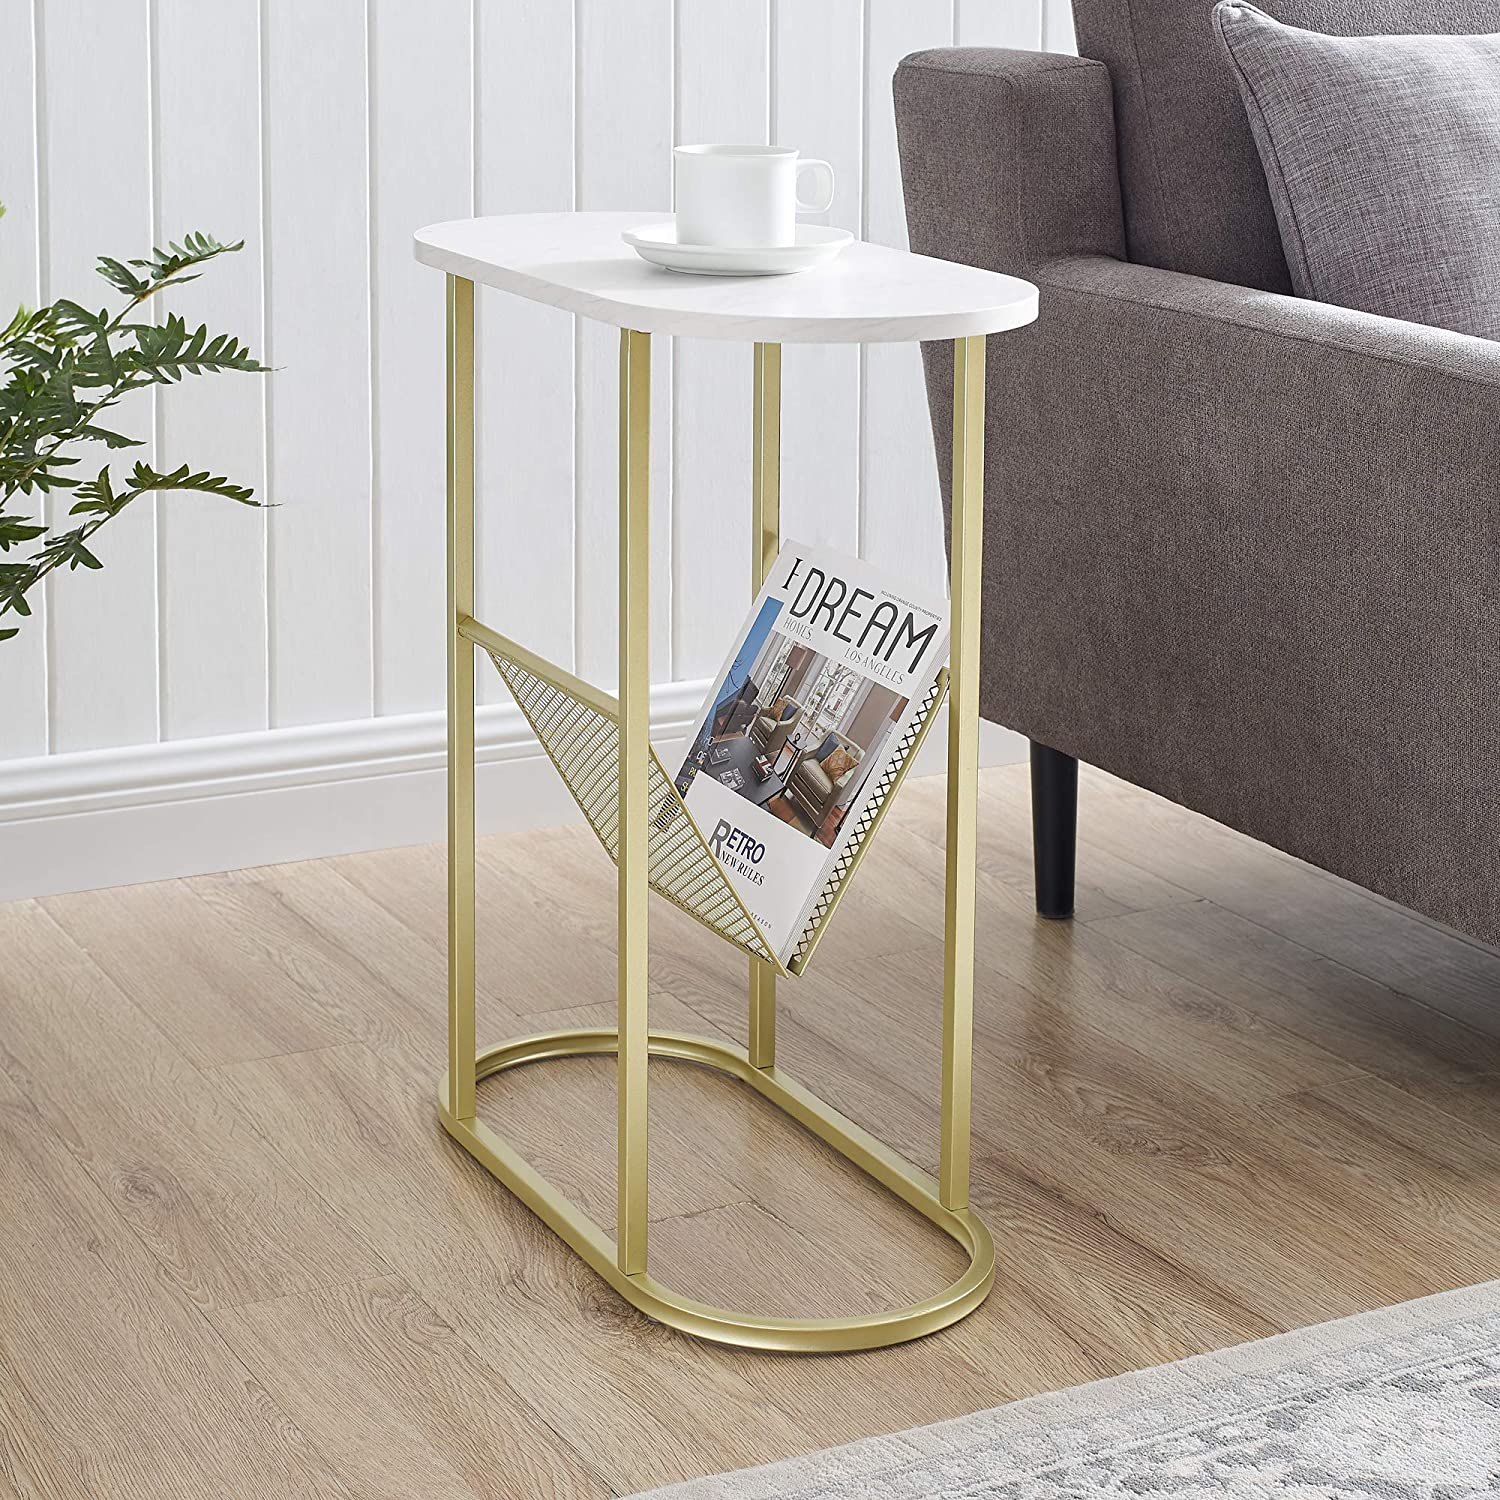 Walker Edison Oval Skinny Side Magazine Rack Living Room Storage Small End Table, 11 Inch, Marble/Gold